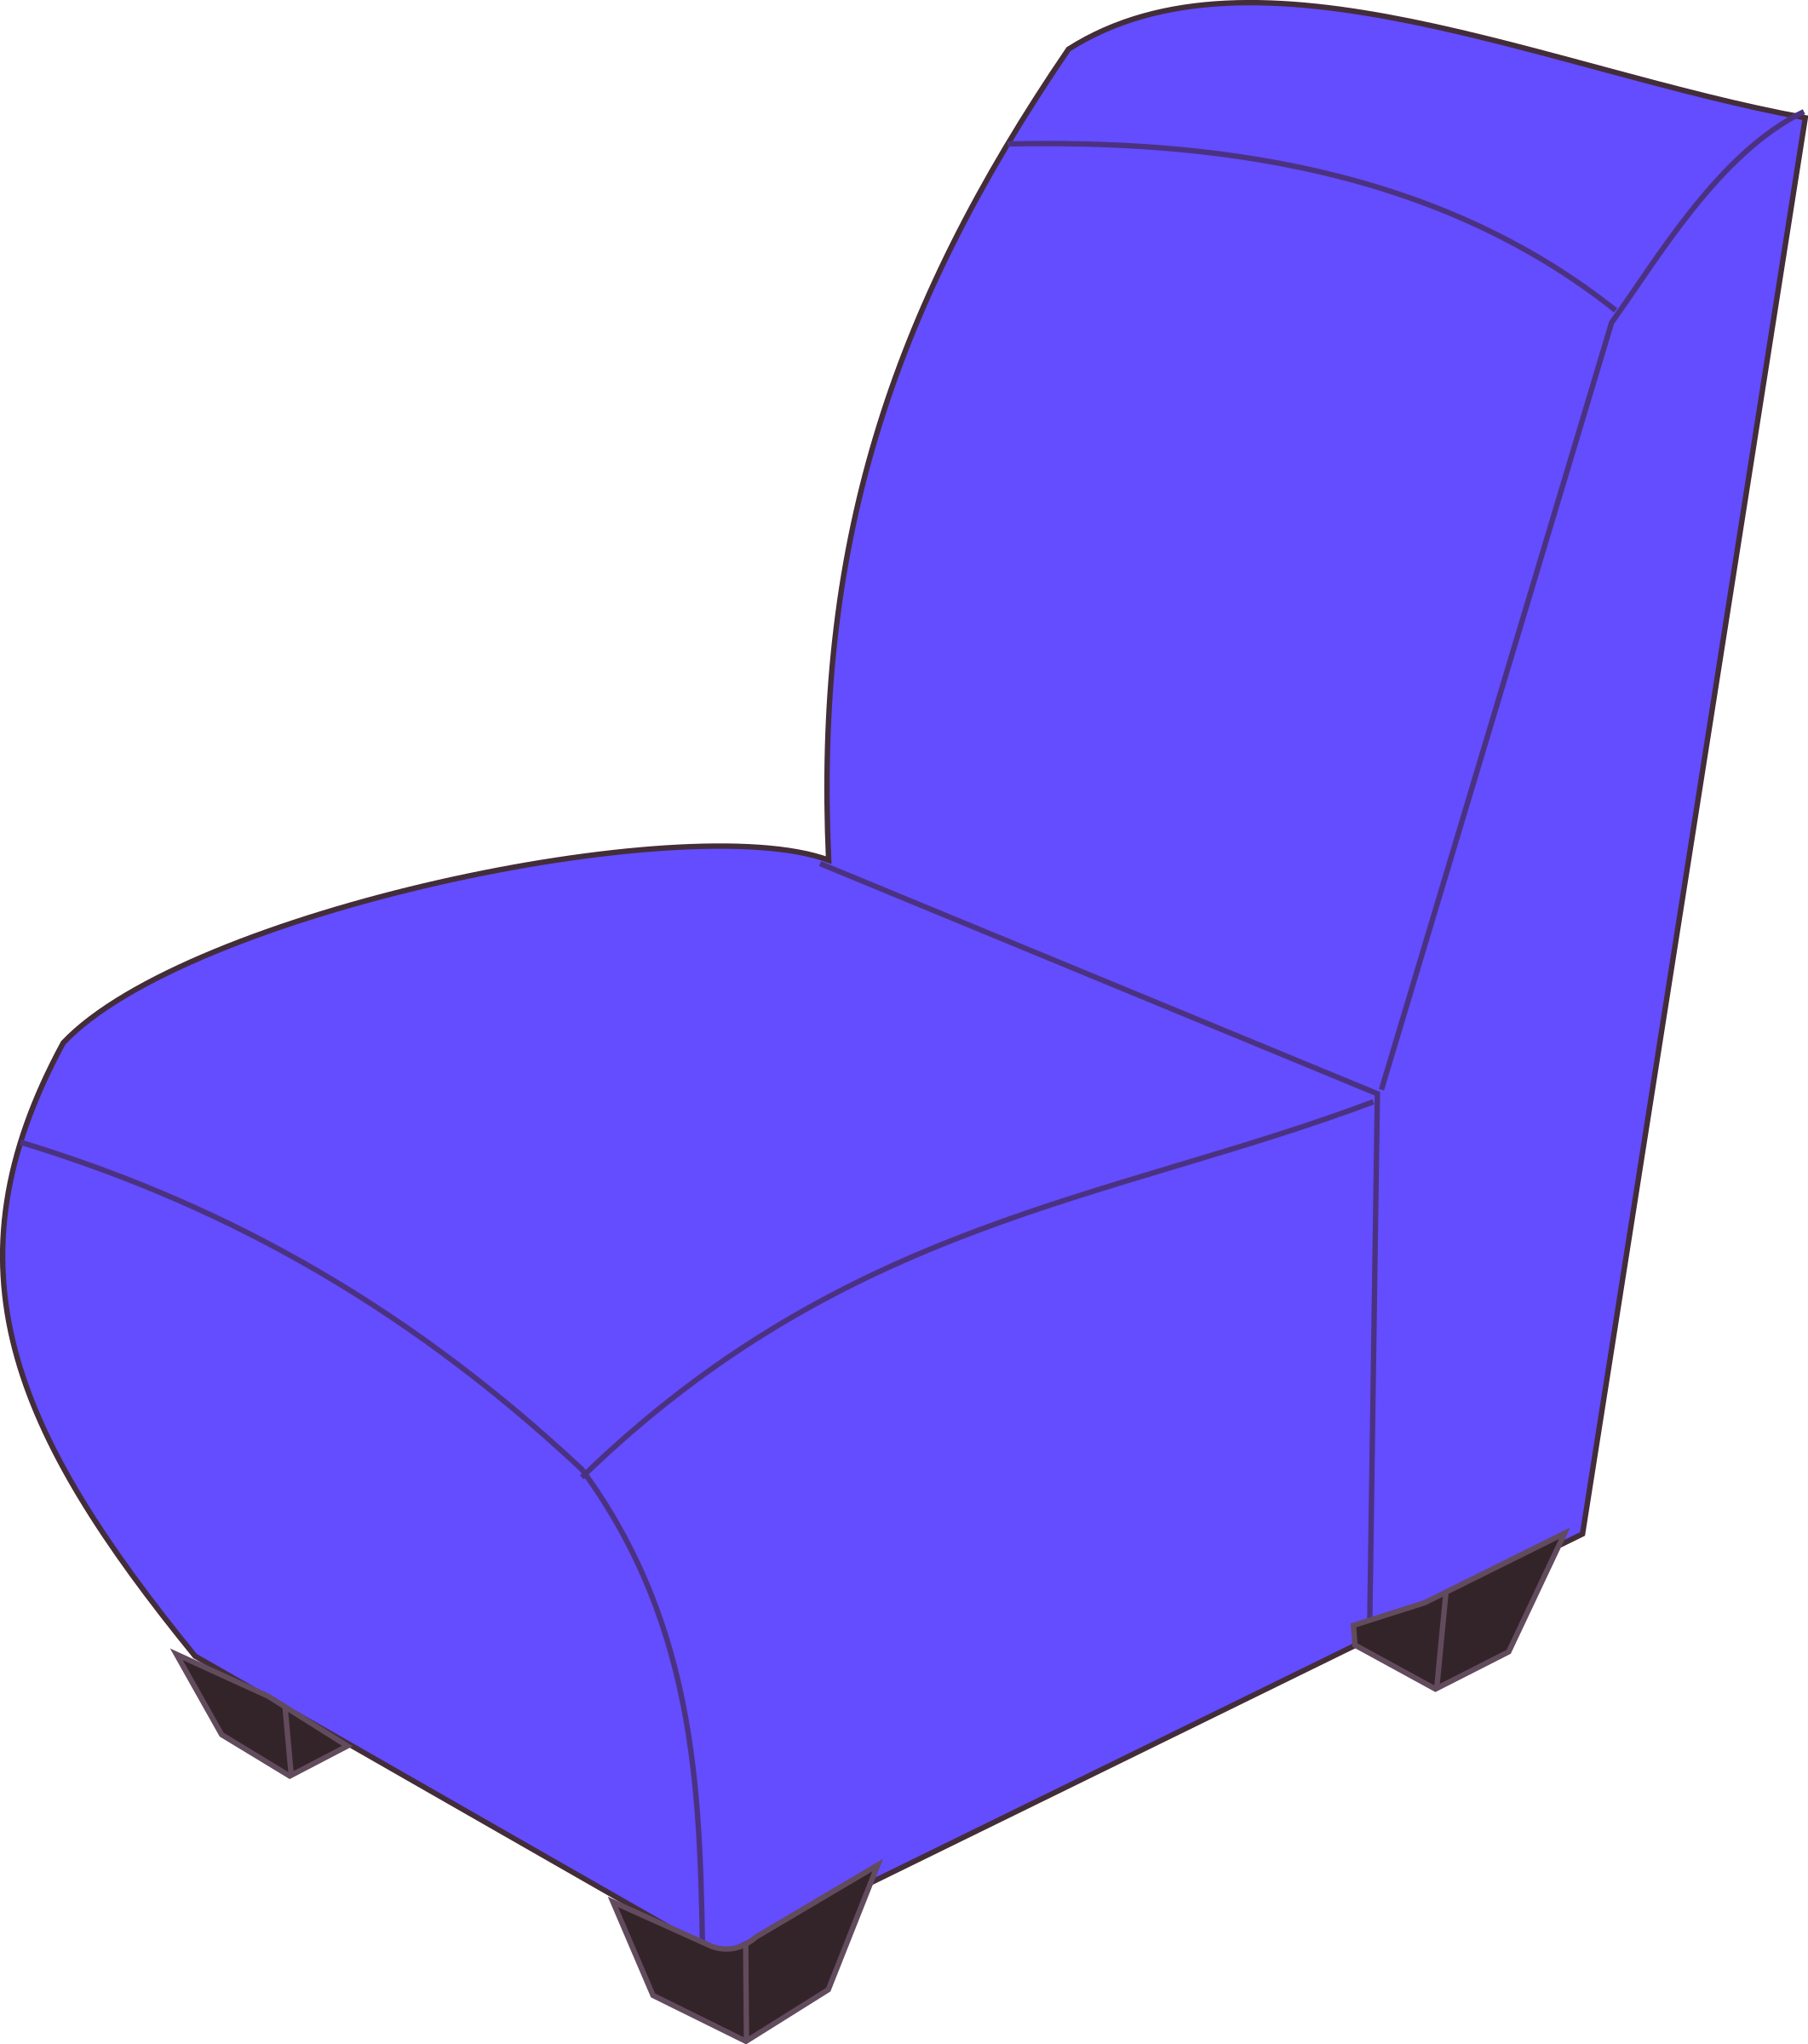 Blue armless chair by Rfc1394